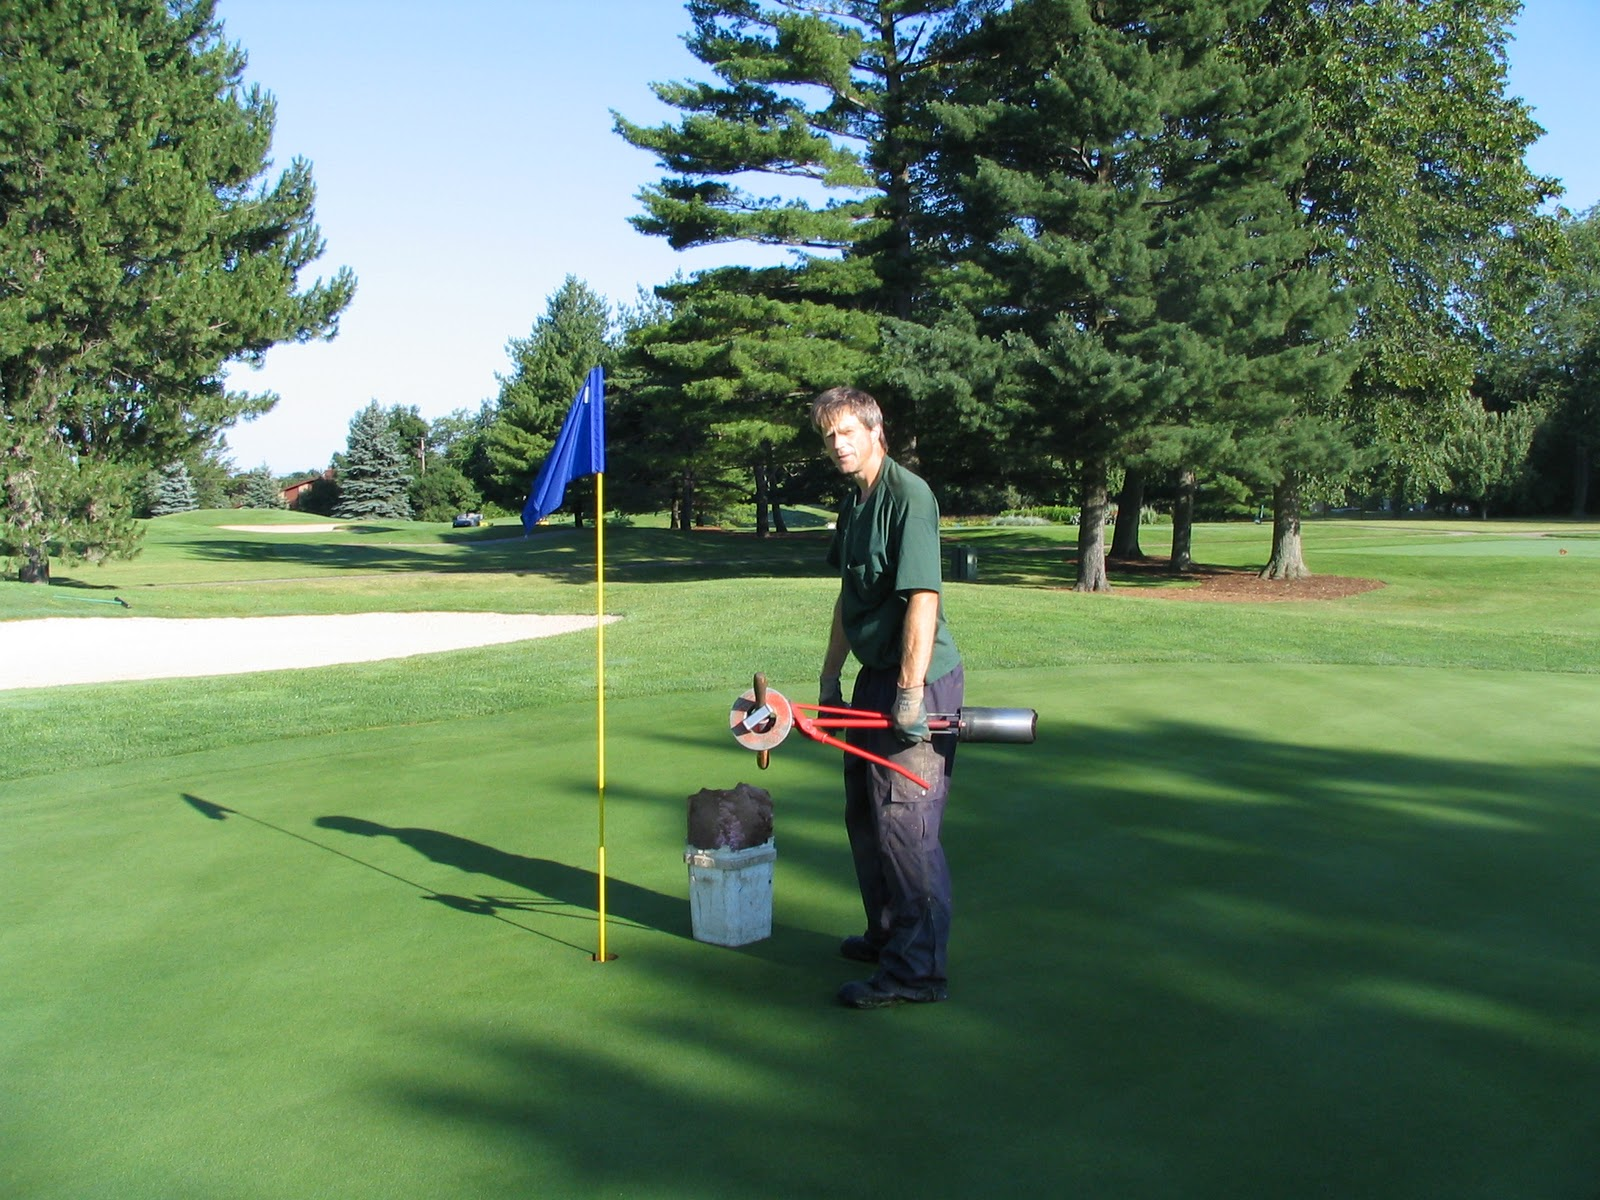 Meadowbrook country club golf course maintenance staff